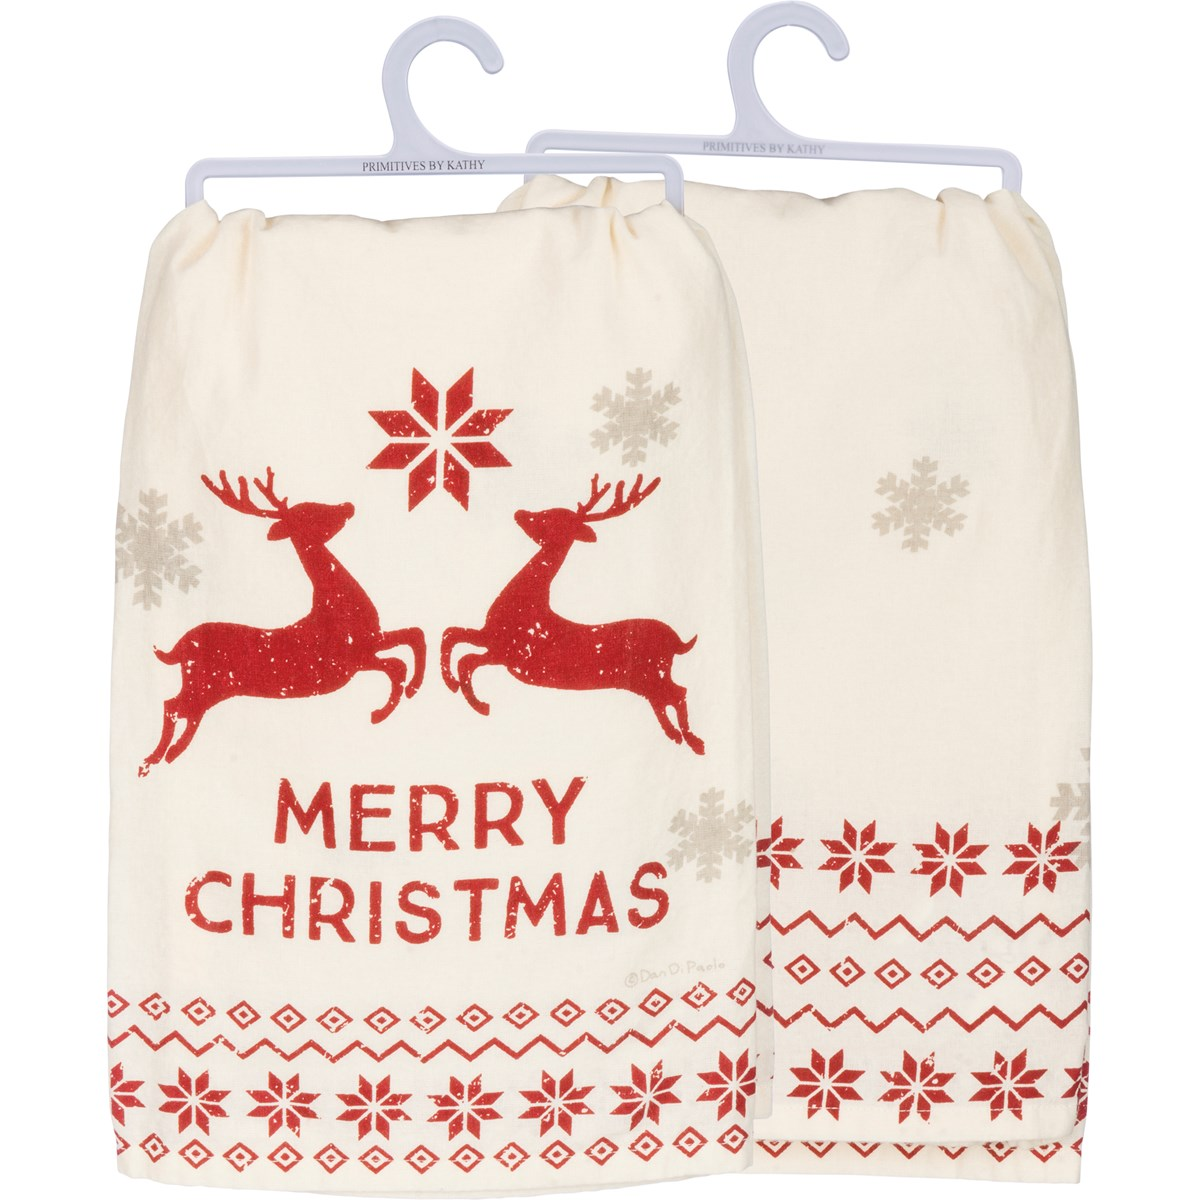 Merry Christmas Dish Towel - Vintage Crossroads